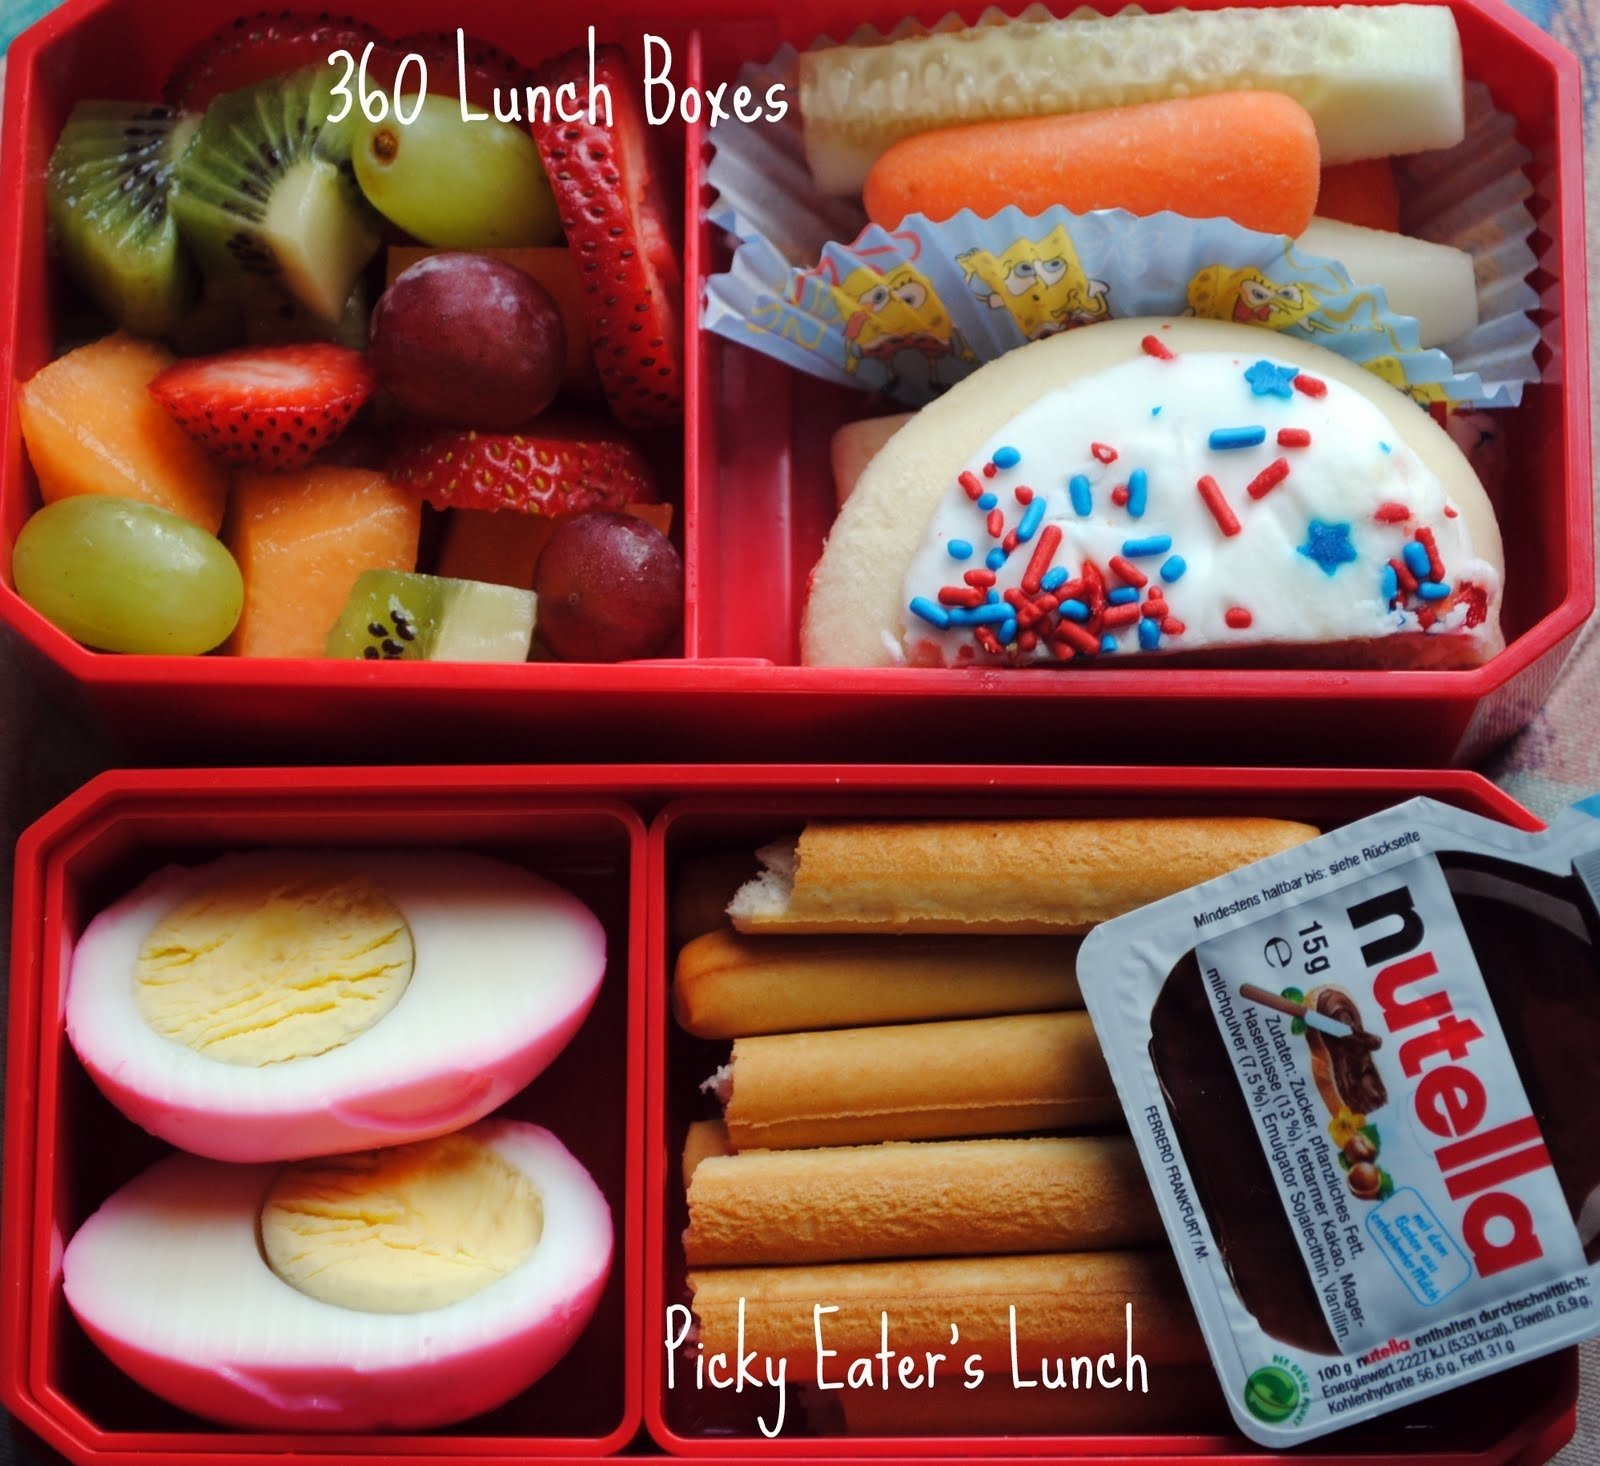 10 Cute Lunch Box Ideas For Picky Eaters 360 lunch boxes kids lunches for tuesday august 17th